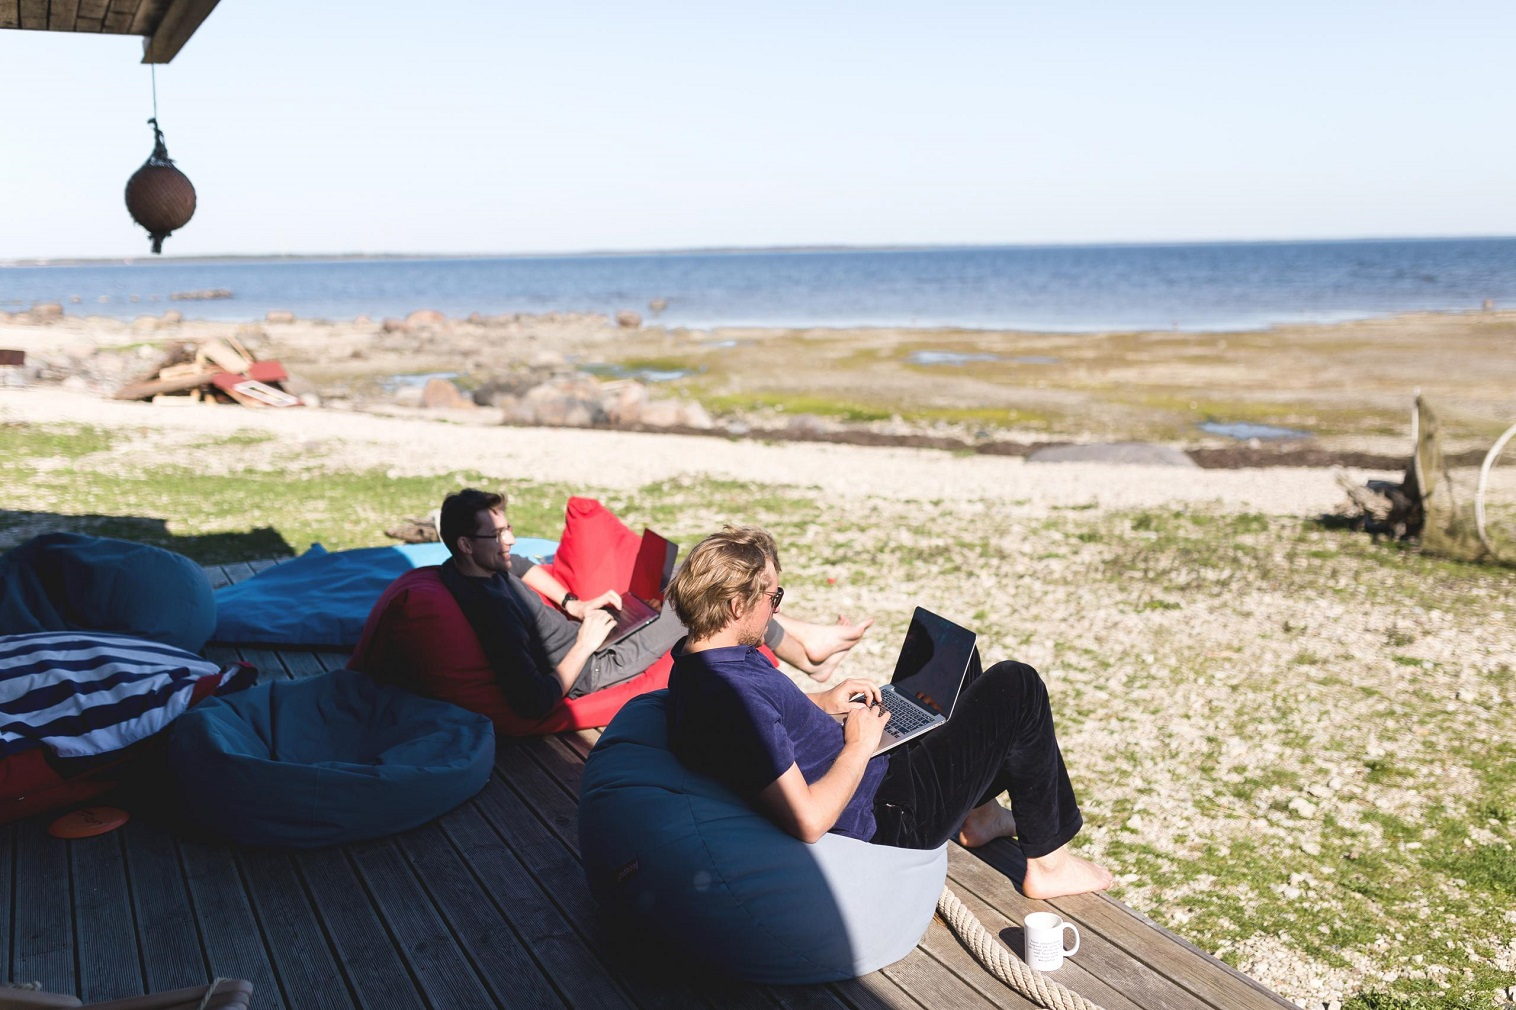 A digital nomad is a person who works remotely, for instance, in IT, finance or marketing while travelling abroad.